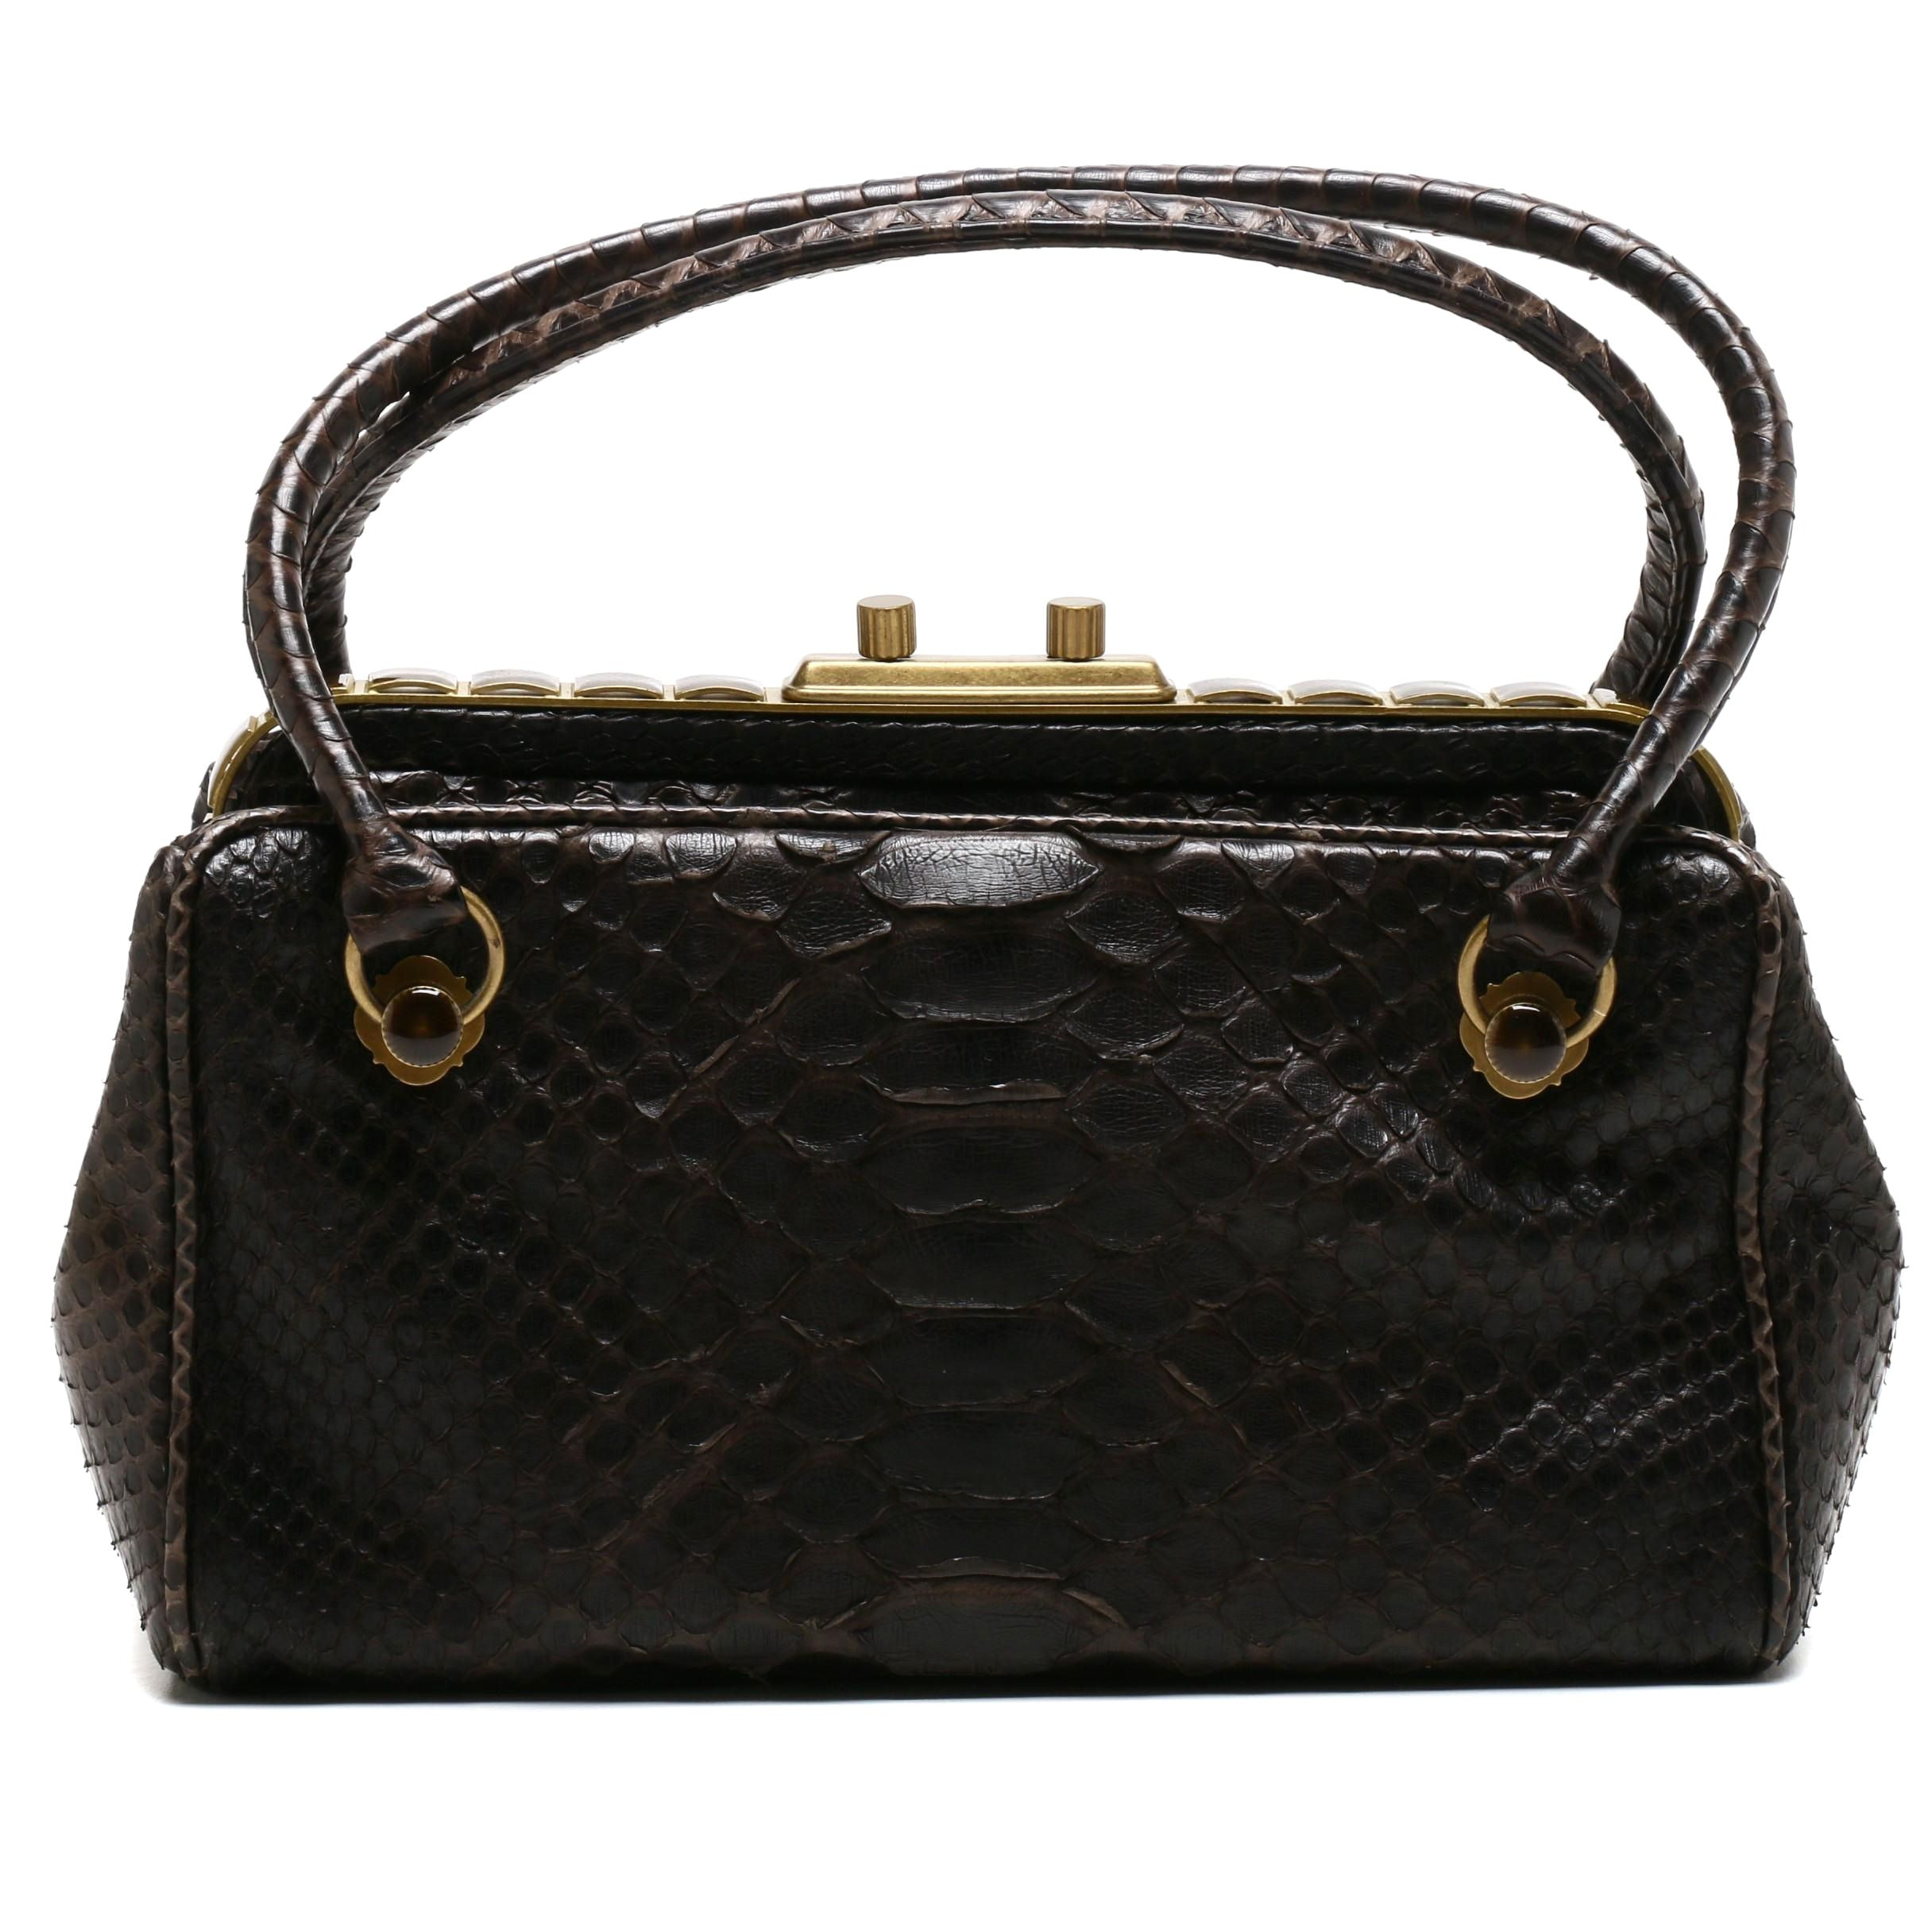 Bottega Veneta Dark Brown Python Skin Frame Bag